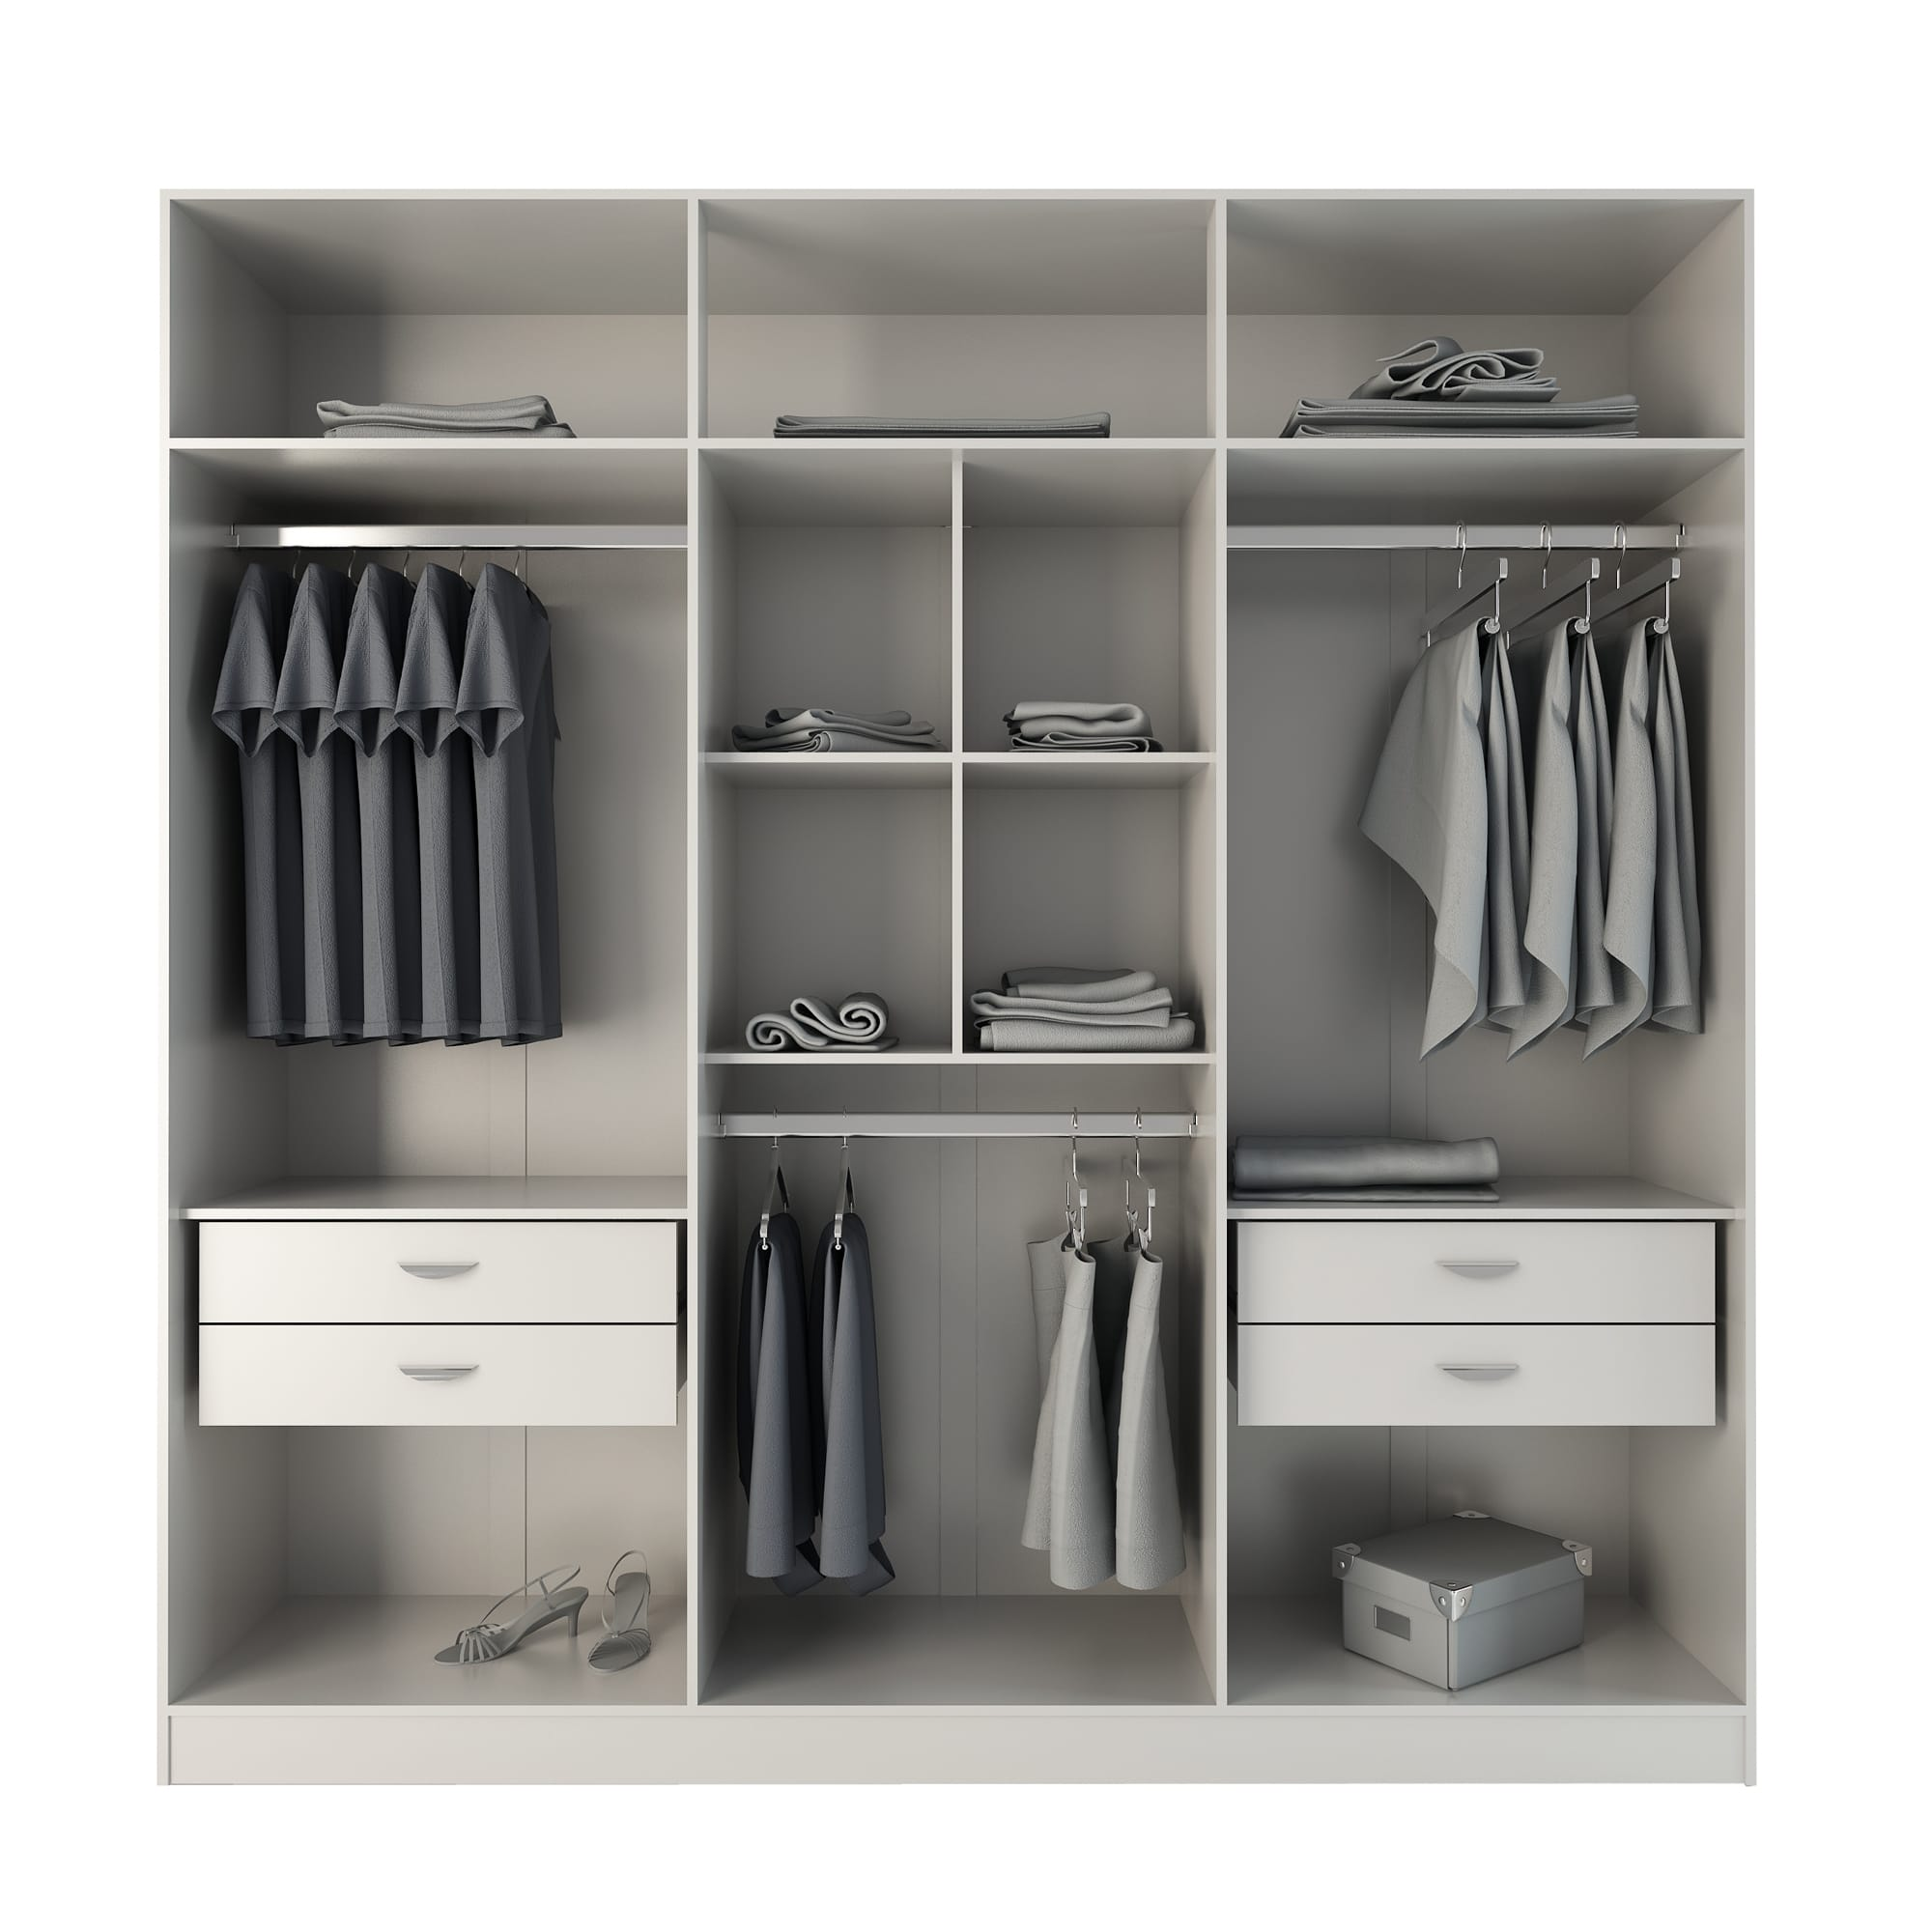 wardrobes wardrobe armoires freestanding ikea well stunning closets of inspirations view closet furniture as